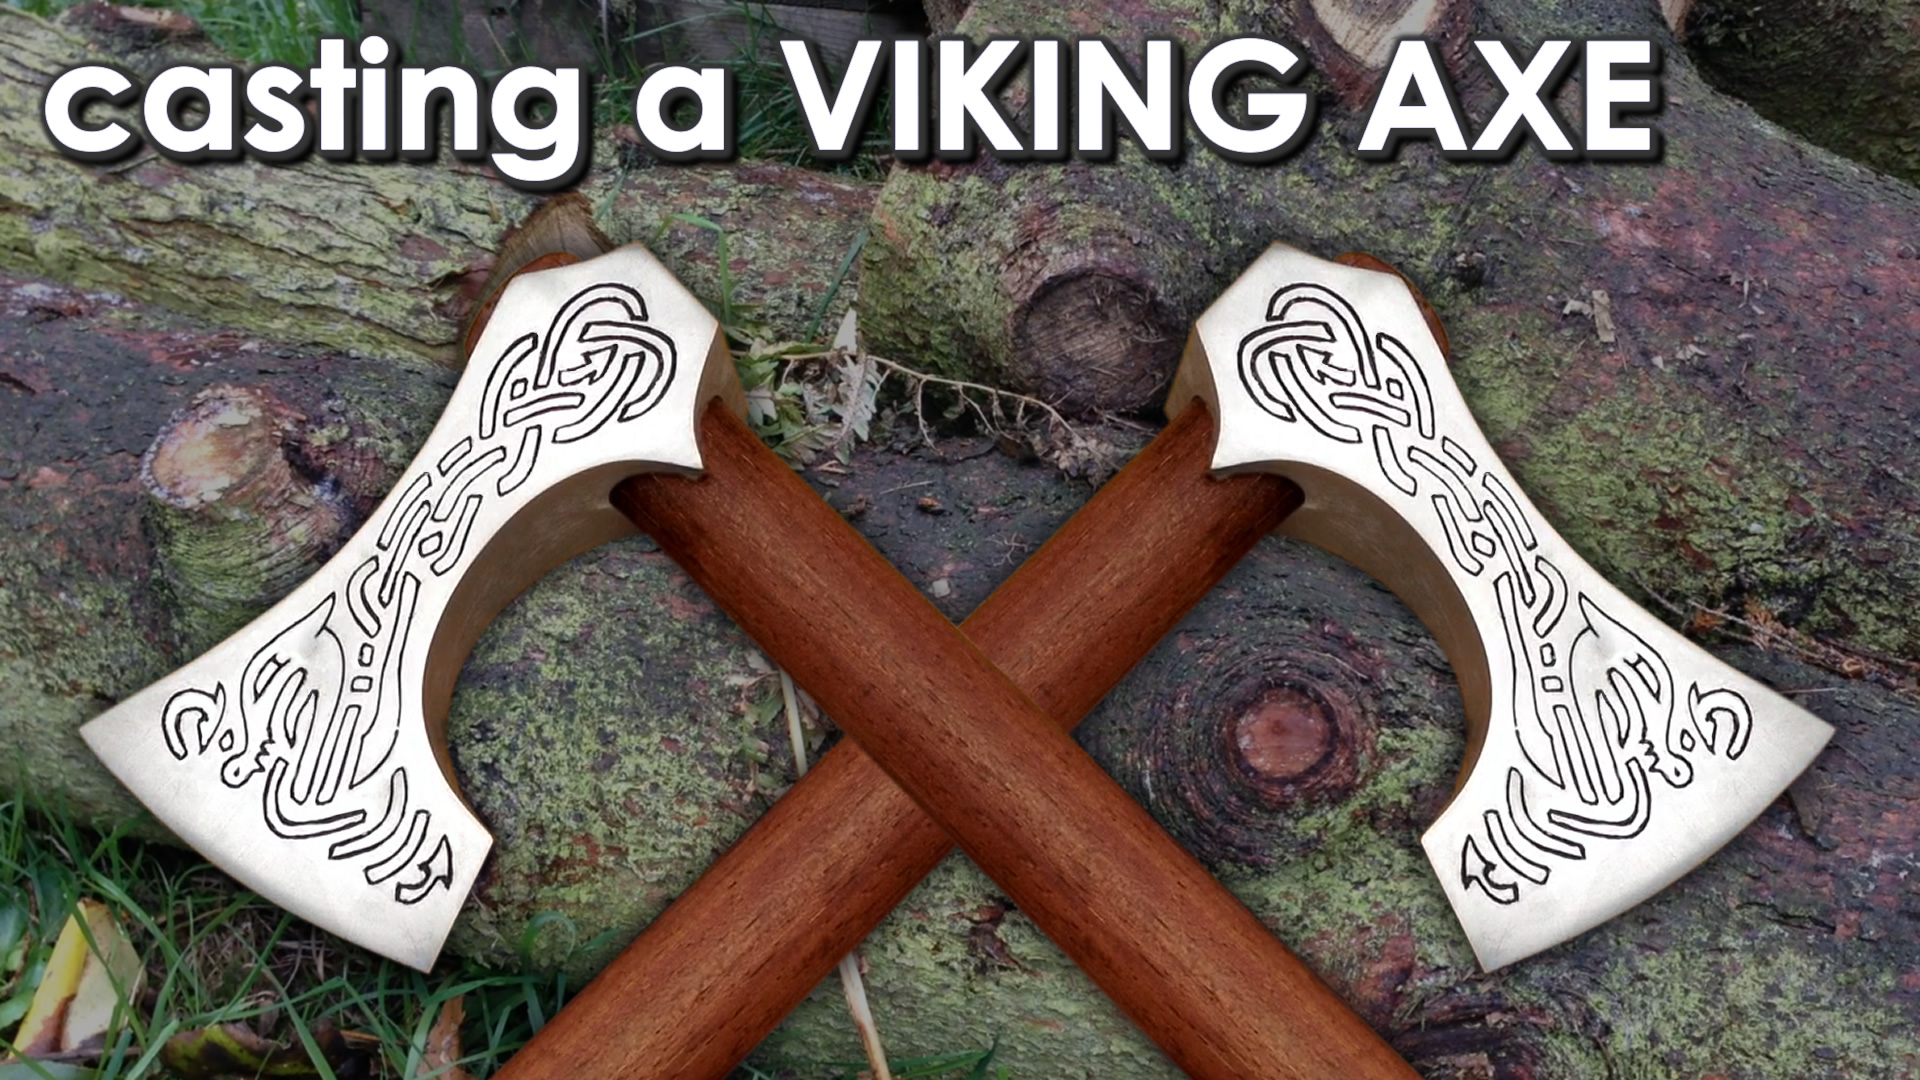 Casting a Viking Axe at home